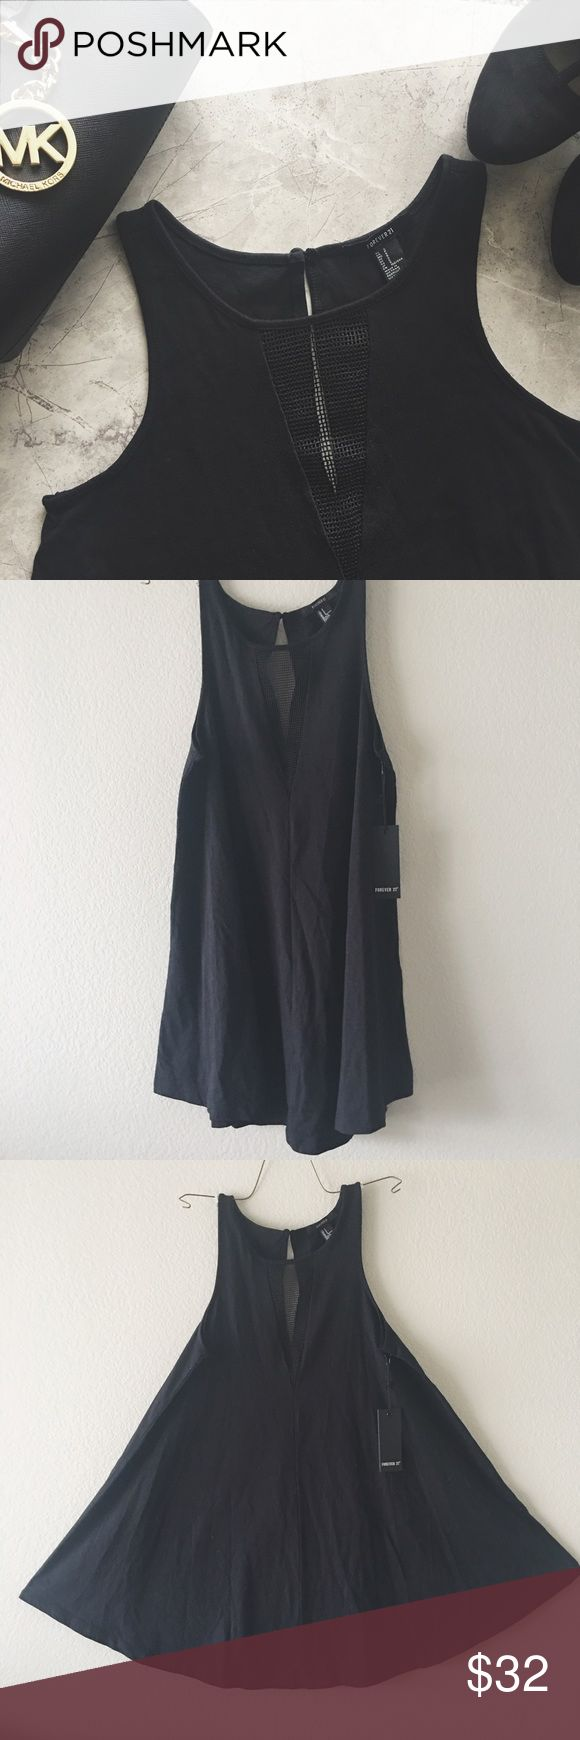 NWT Forever 21 deep V dress Deep V dress with a mess netting effect covering the V. Bottom of the dress makes a bell shape but falls just draping the body making it flowey:) Forever 21 Dresses Mini